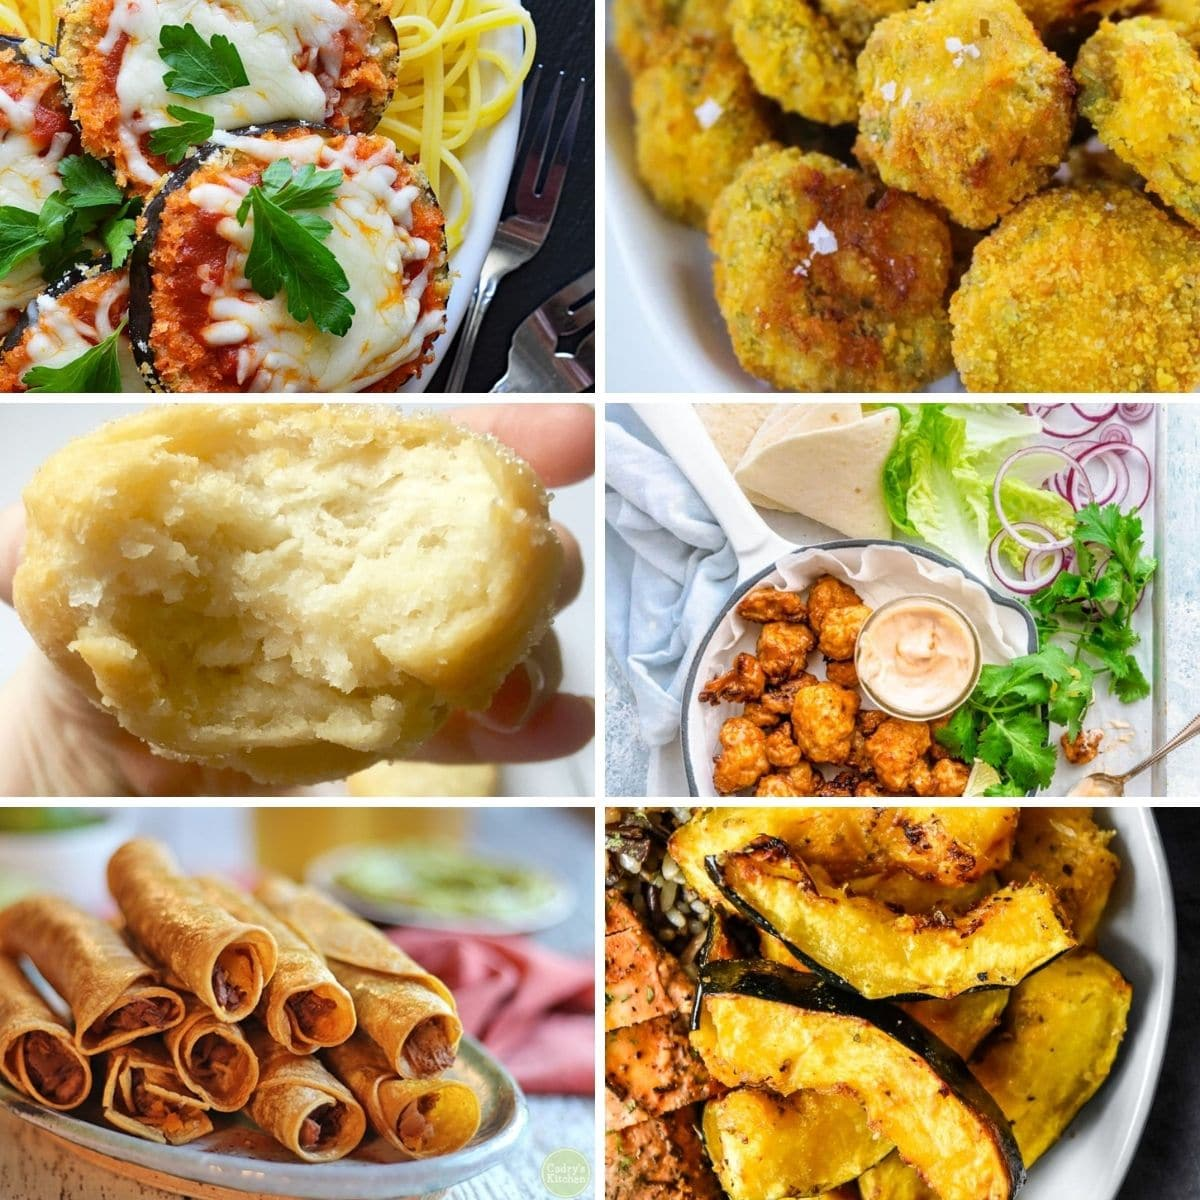 Easy vegan air fryer recipes from the content formed in a collage